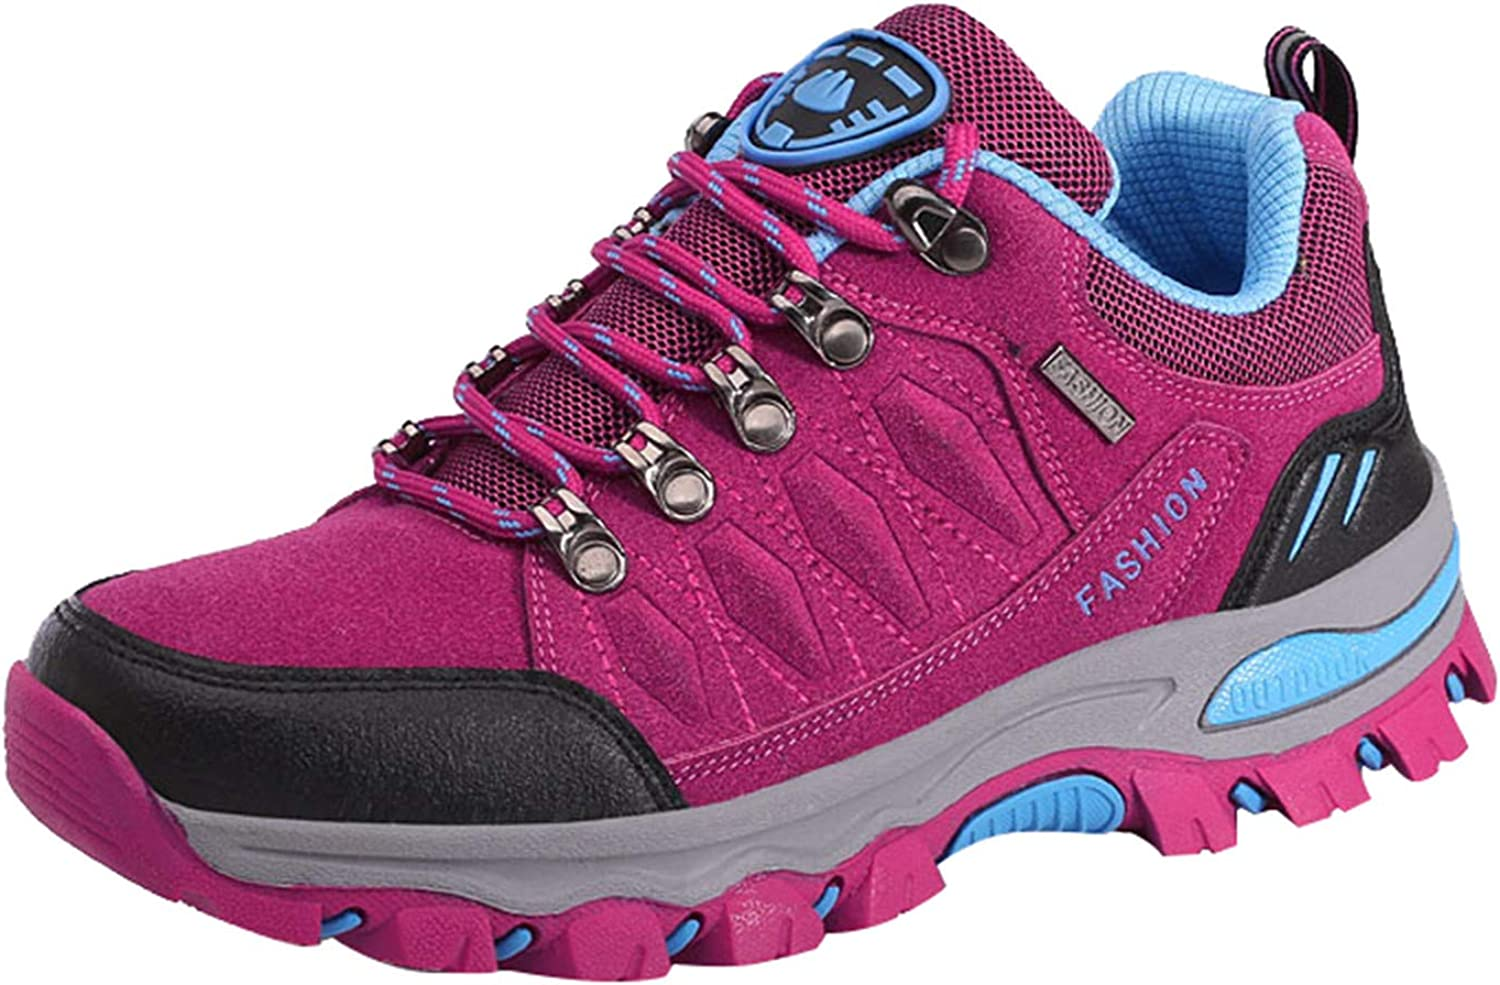 Ladies Outdoor Hiking Shoes Non-Slip Wear-Resistant Female Hiking Shoes Thick-Soled Waterproof Travel Shoes